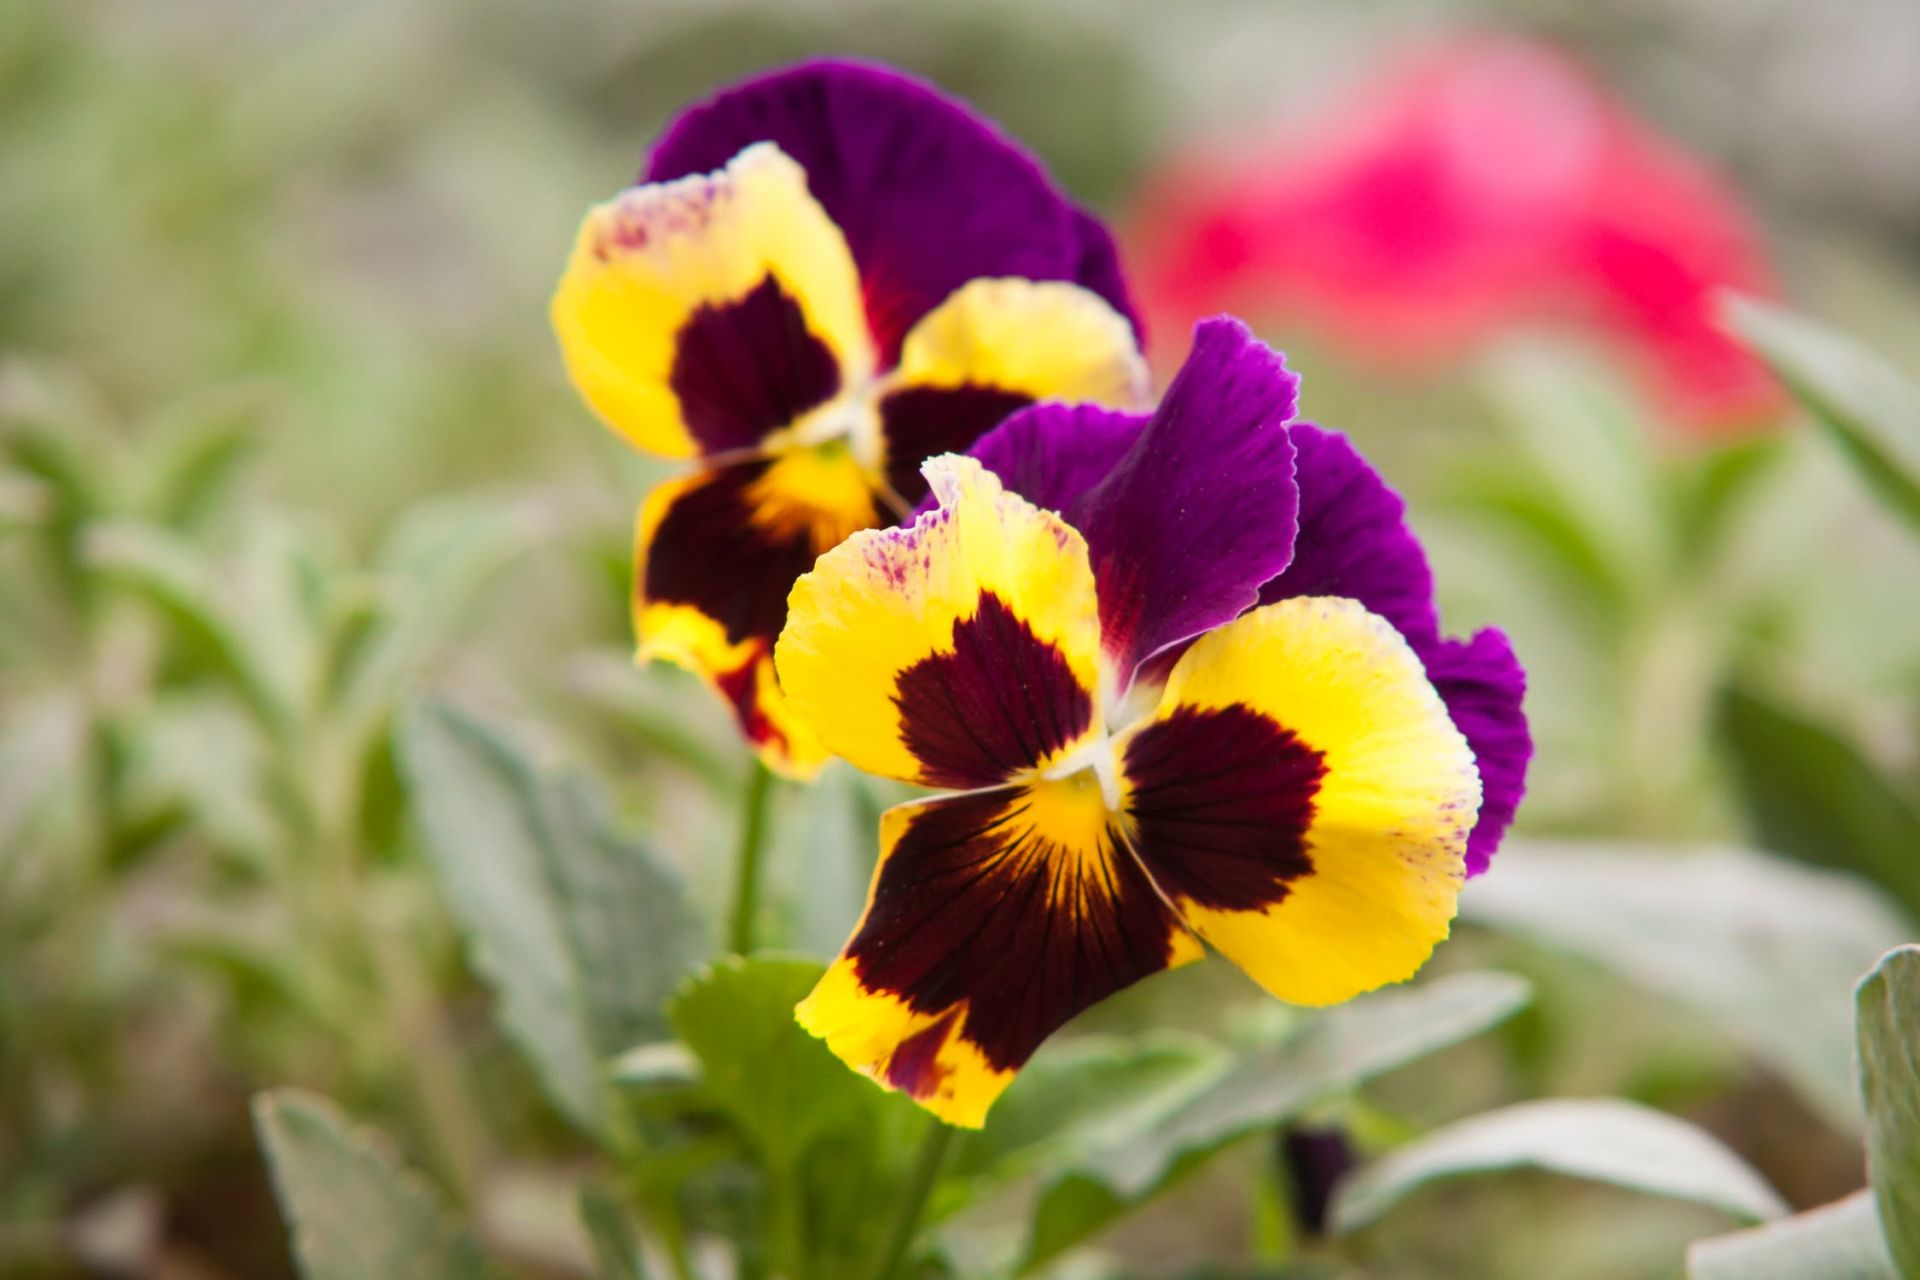 Some of the best flowers to plant this Spring